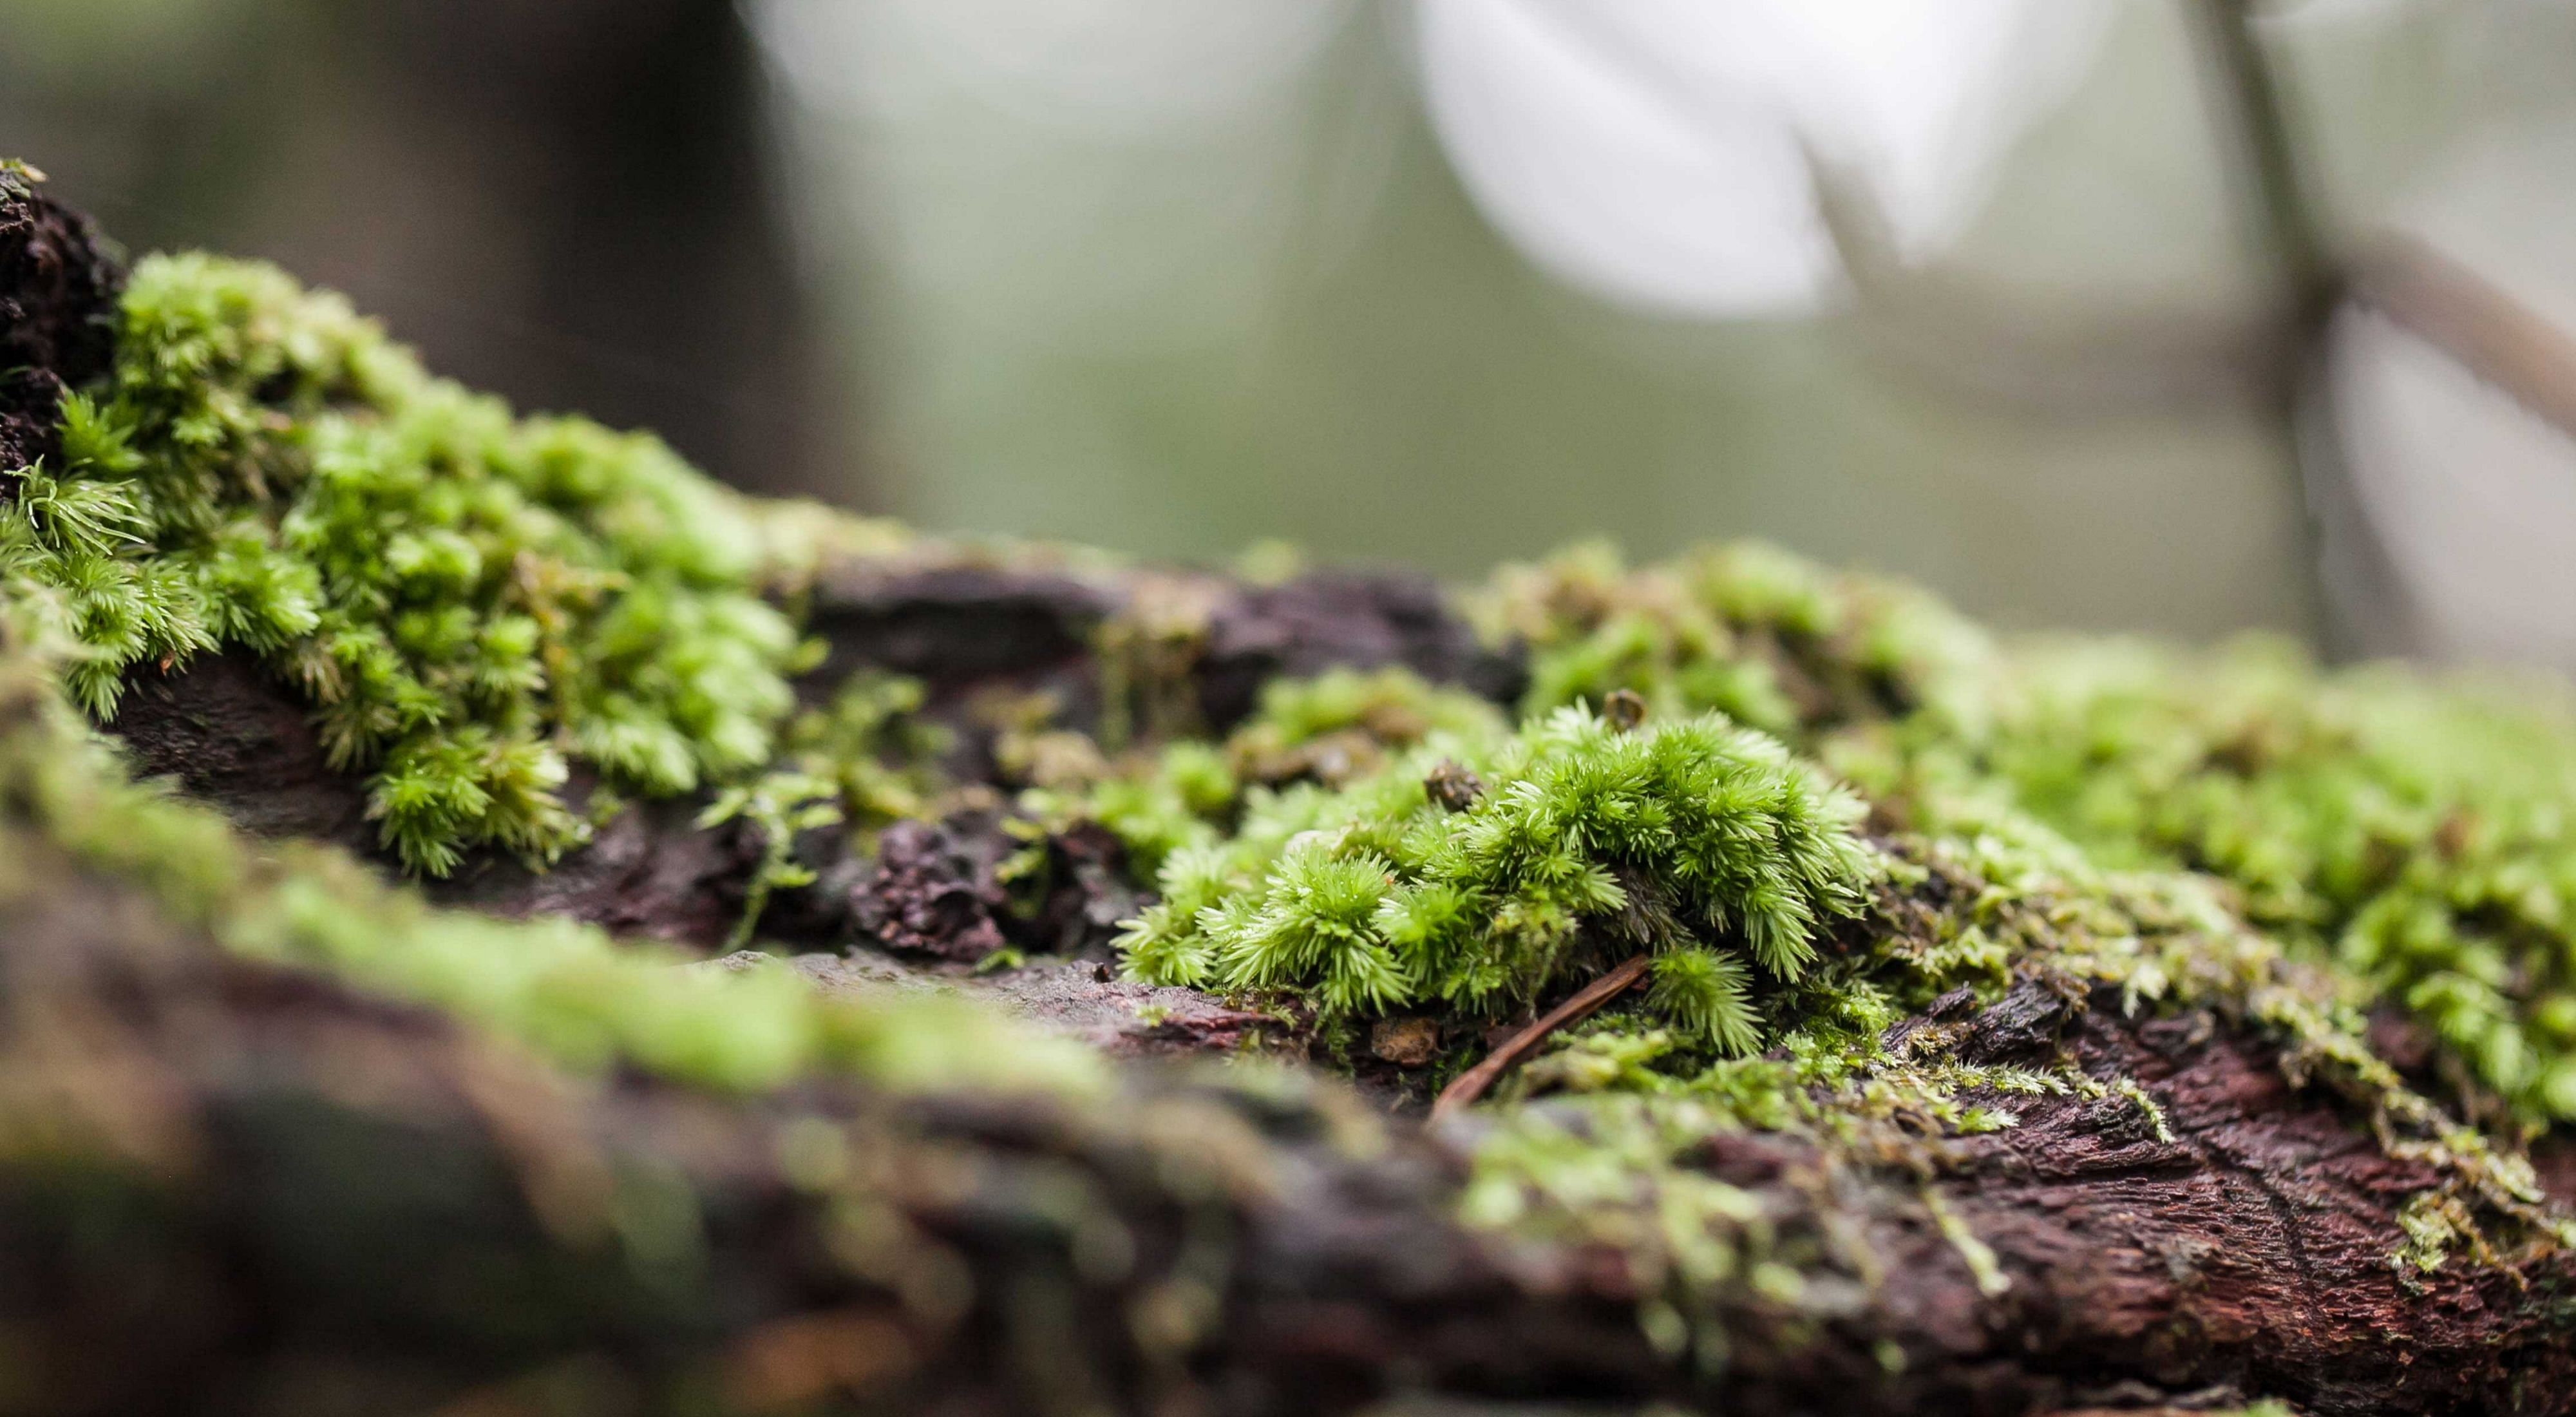 close up of mossy log on forest floor